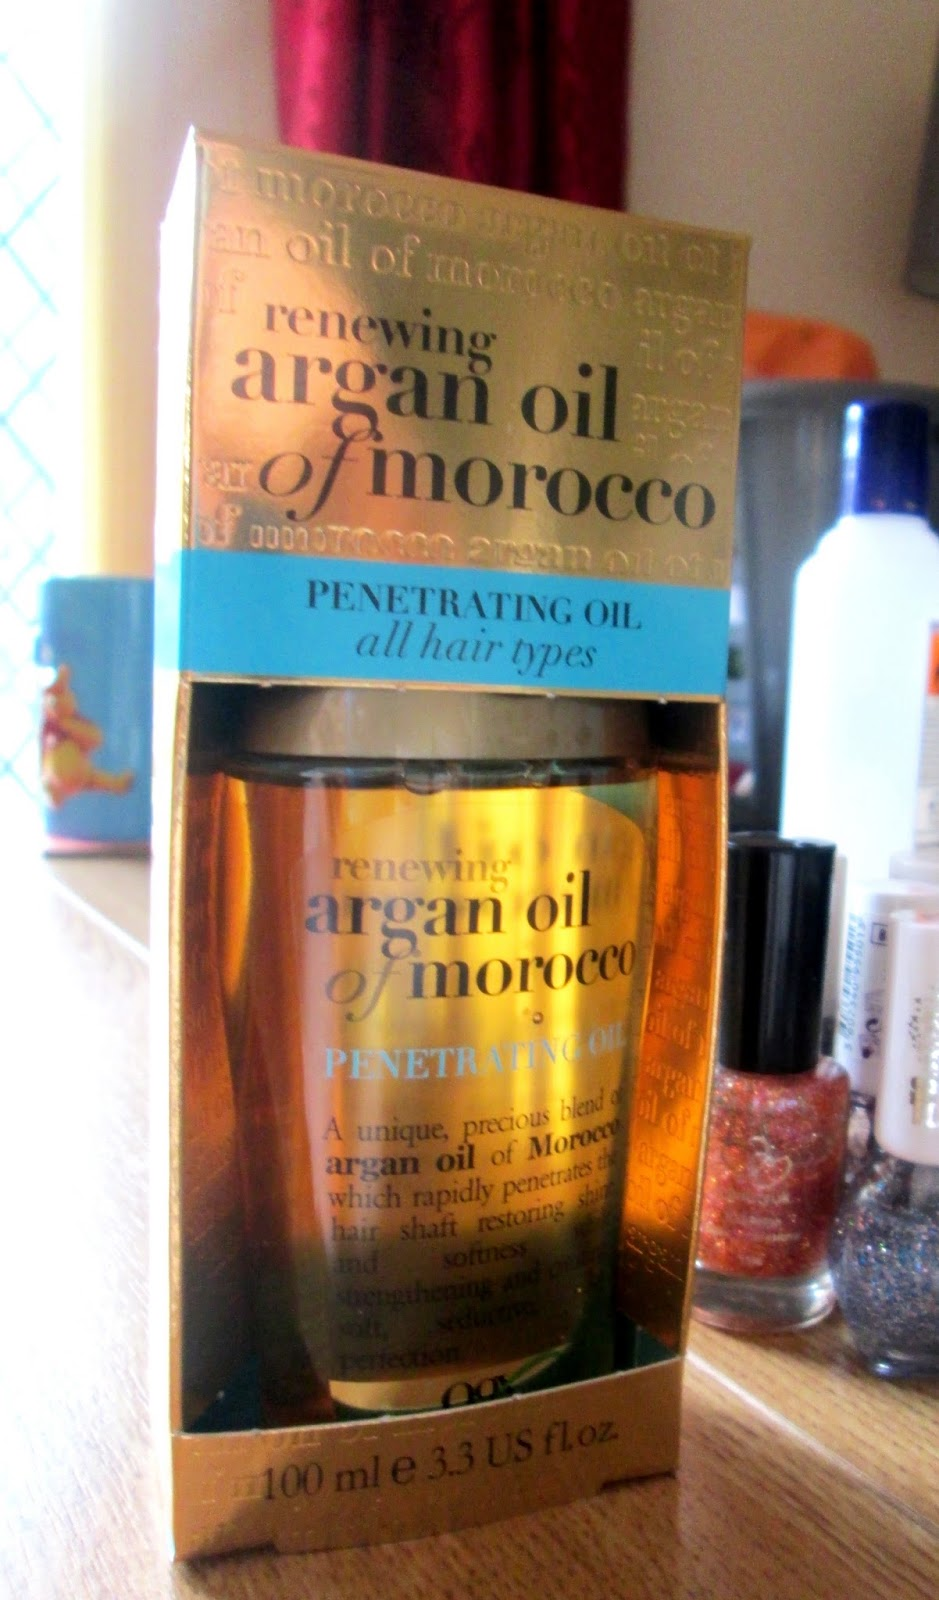 Moroccan renewing argan oil for hair